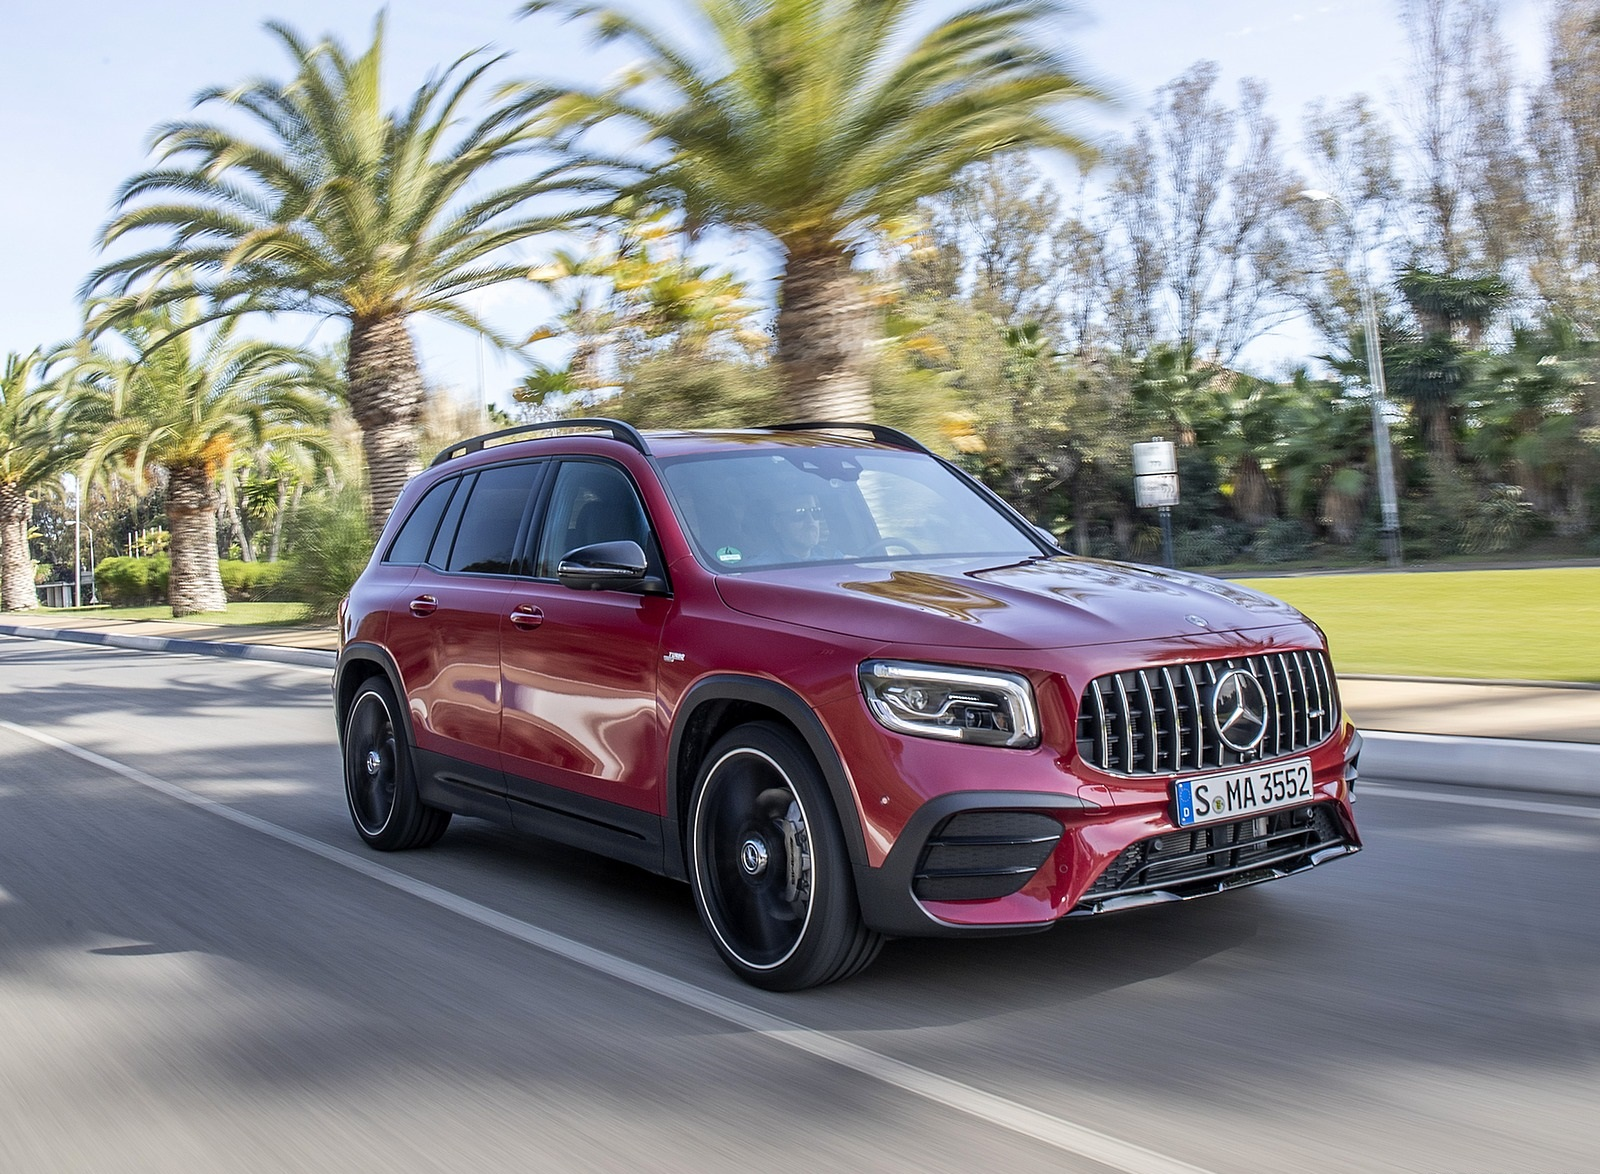 2021 Mercedes-AMG GLB 35 4MATIC (Color: Designo Patagonia Red Metallic) Front Three-Quarter Wallpapers (2)